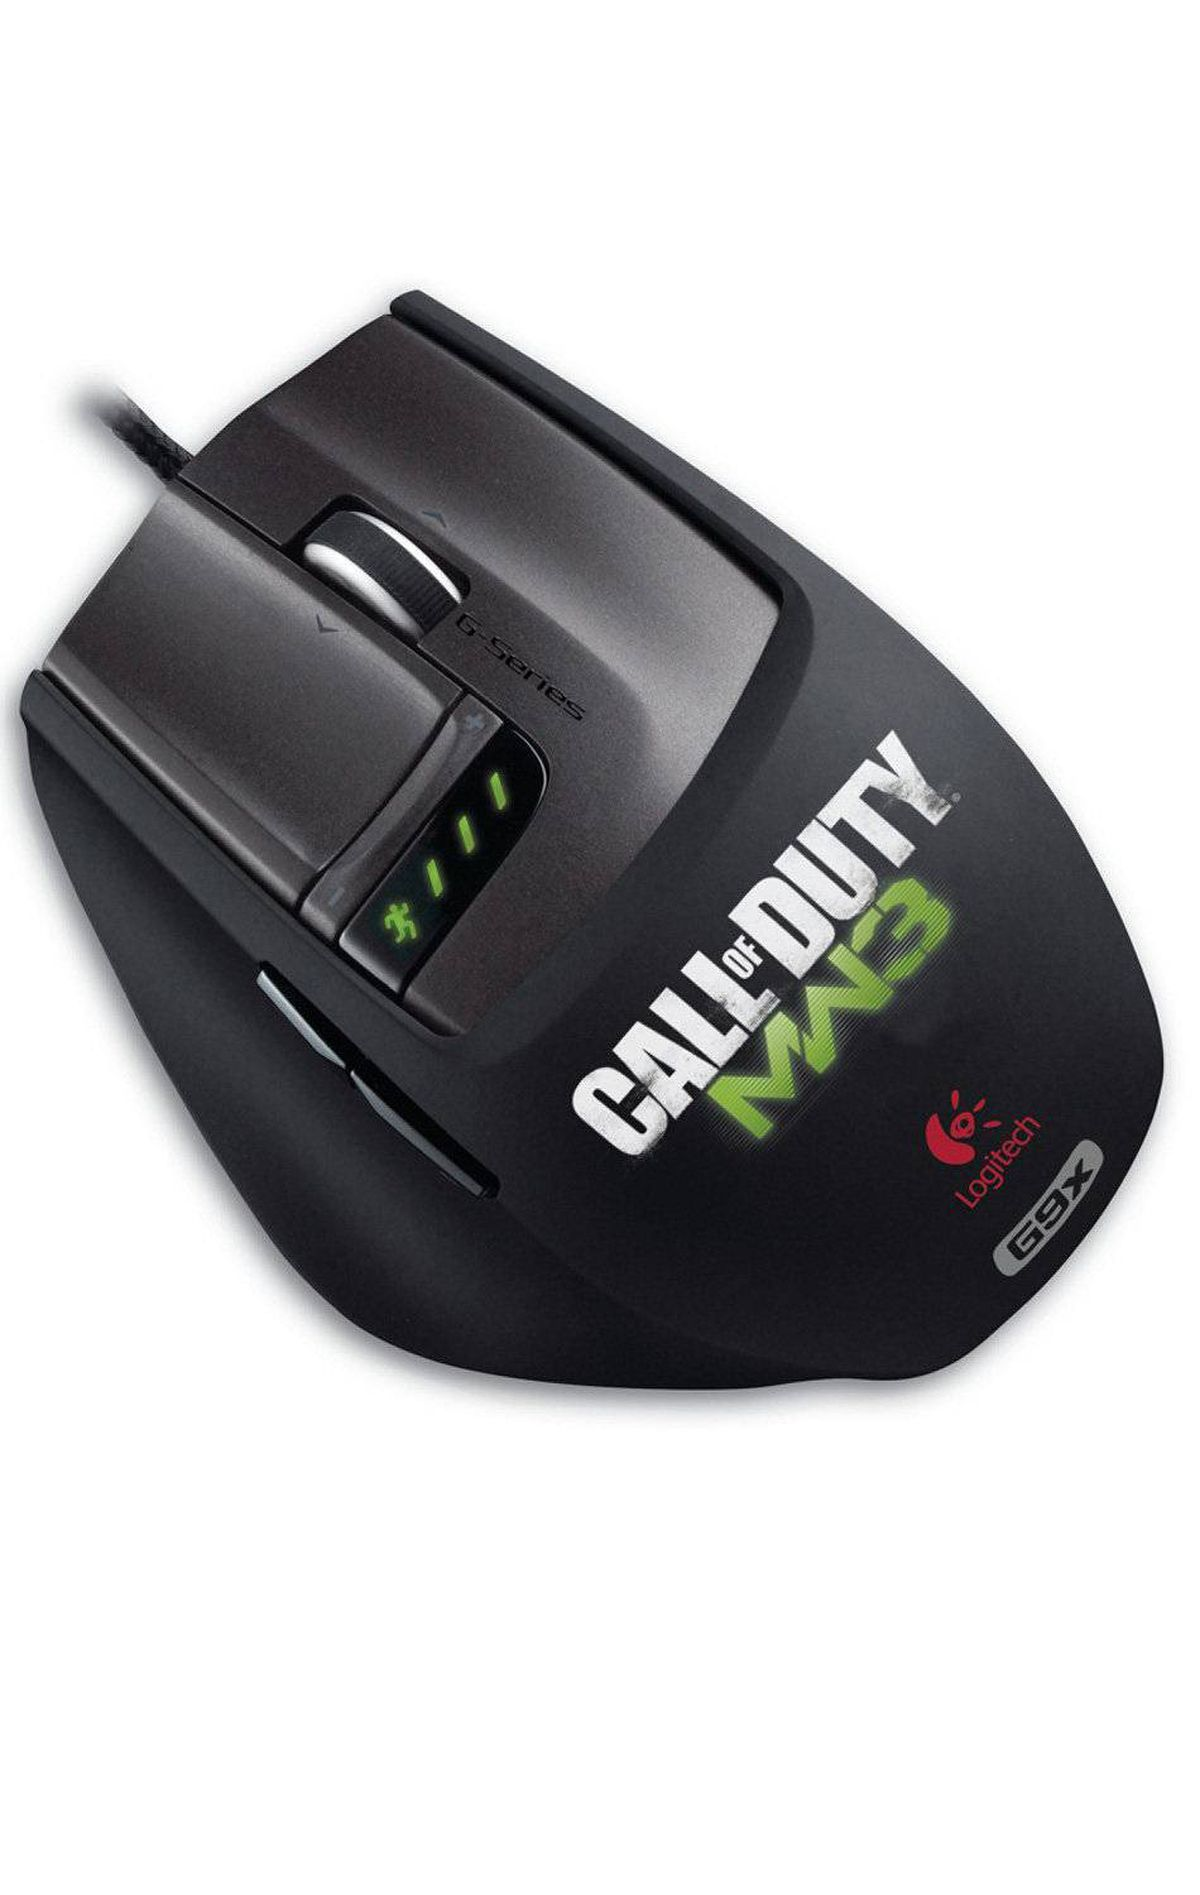 Logitech Laser Mouse G9X: Made for Call of Duty With on-the-fly sensitivity alteration, removable weights, swappable cases (one smooth, one grippy), and the ability to switch between fluid and ratchet scrolling, Logitech's latest gaming mouse offers enough customization options to suit just about any kind of PC gamer. The Call of Duty branding is optional. ($99.99; www.logitech.com)